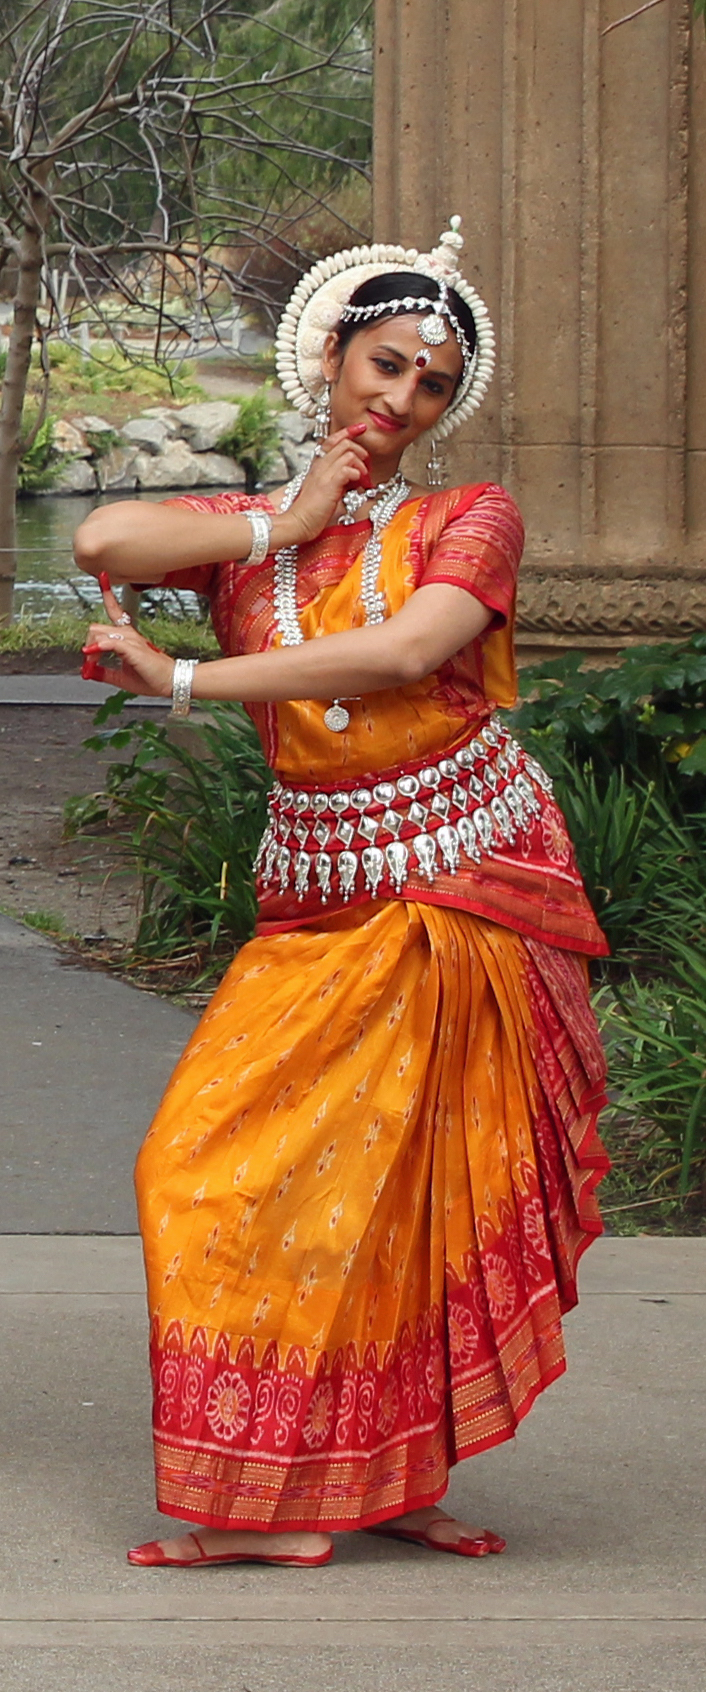 Aparna Krishnamoorthy as the Goddess